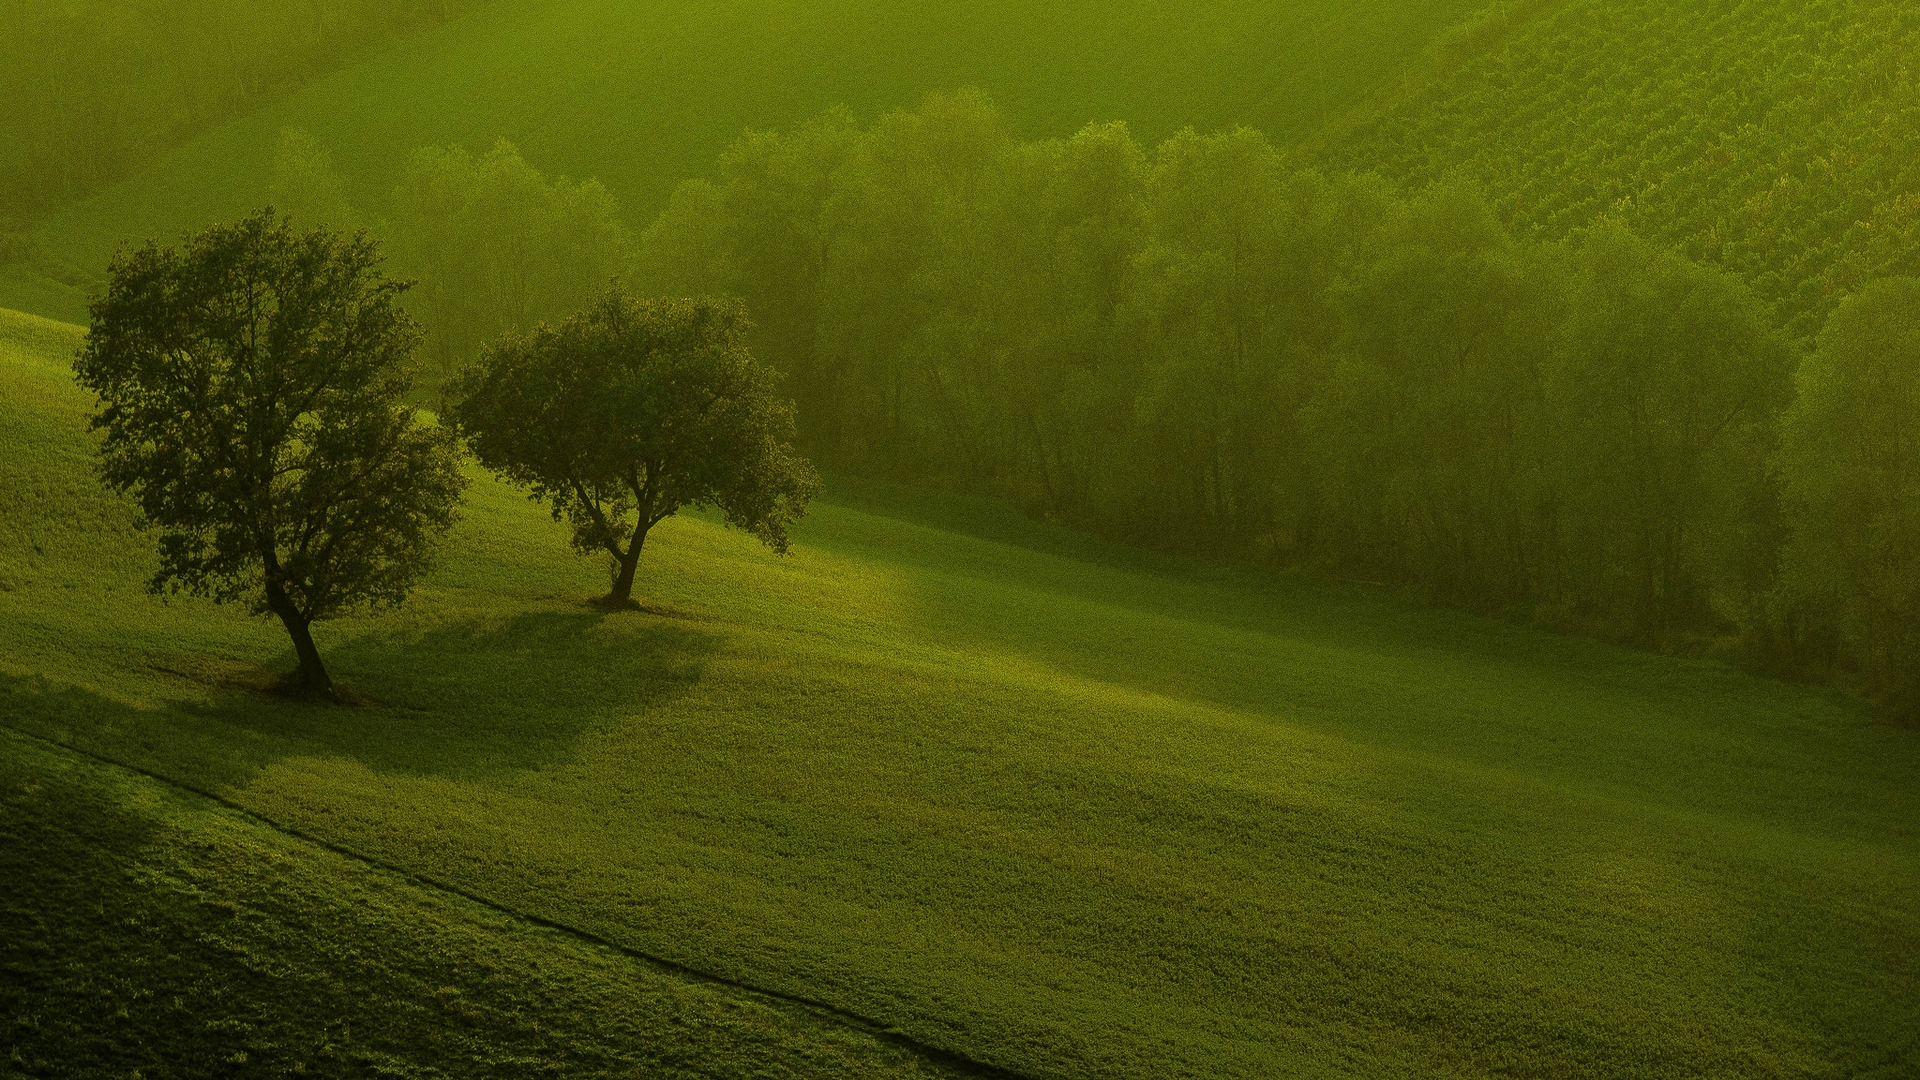 Wallpapers hd nature for windows 8